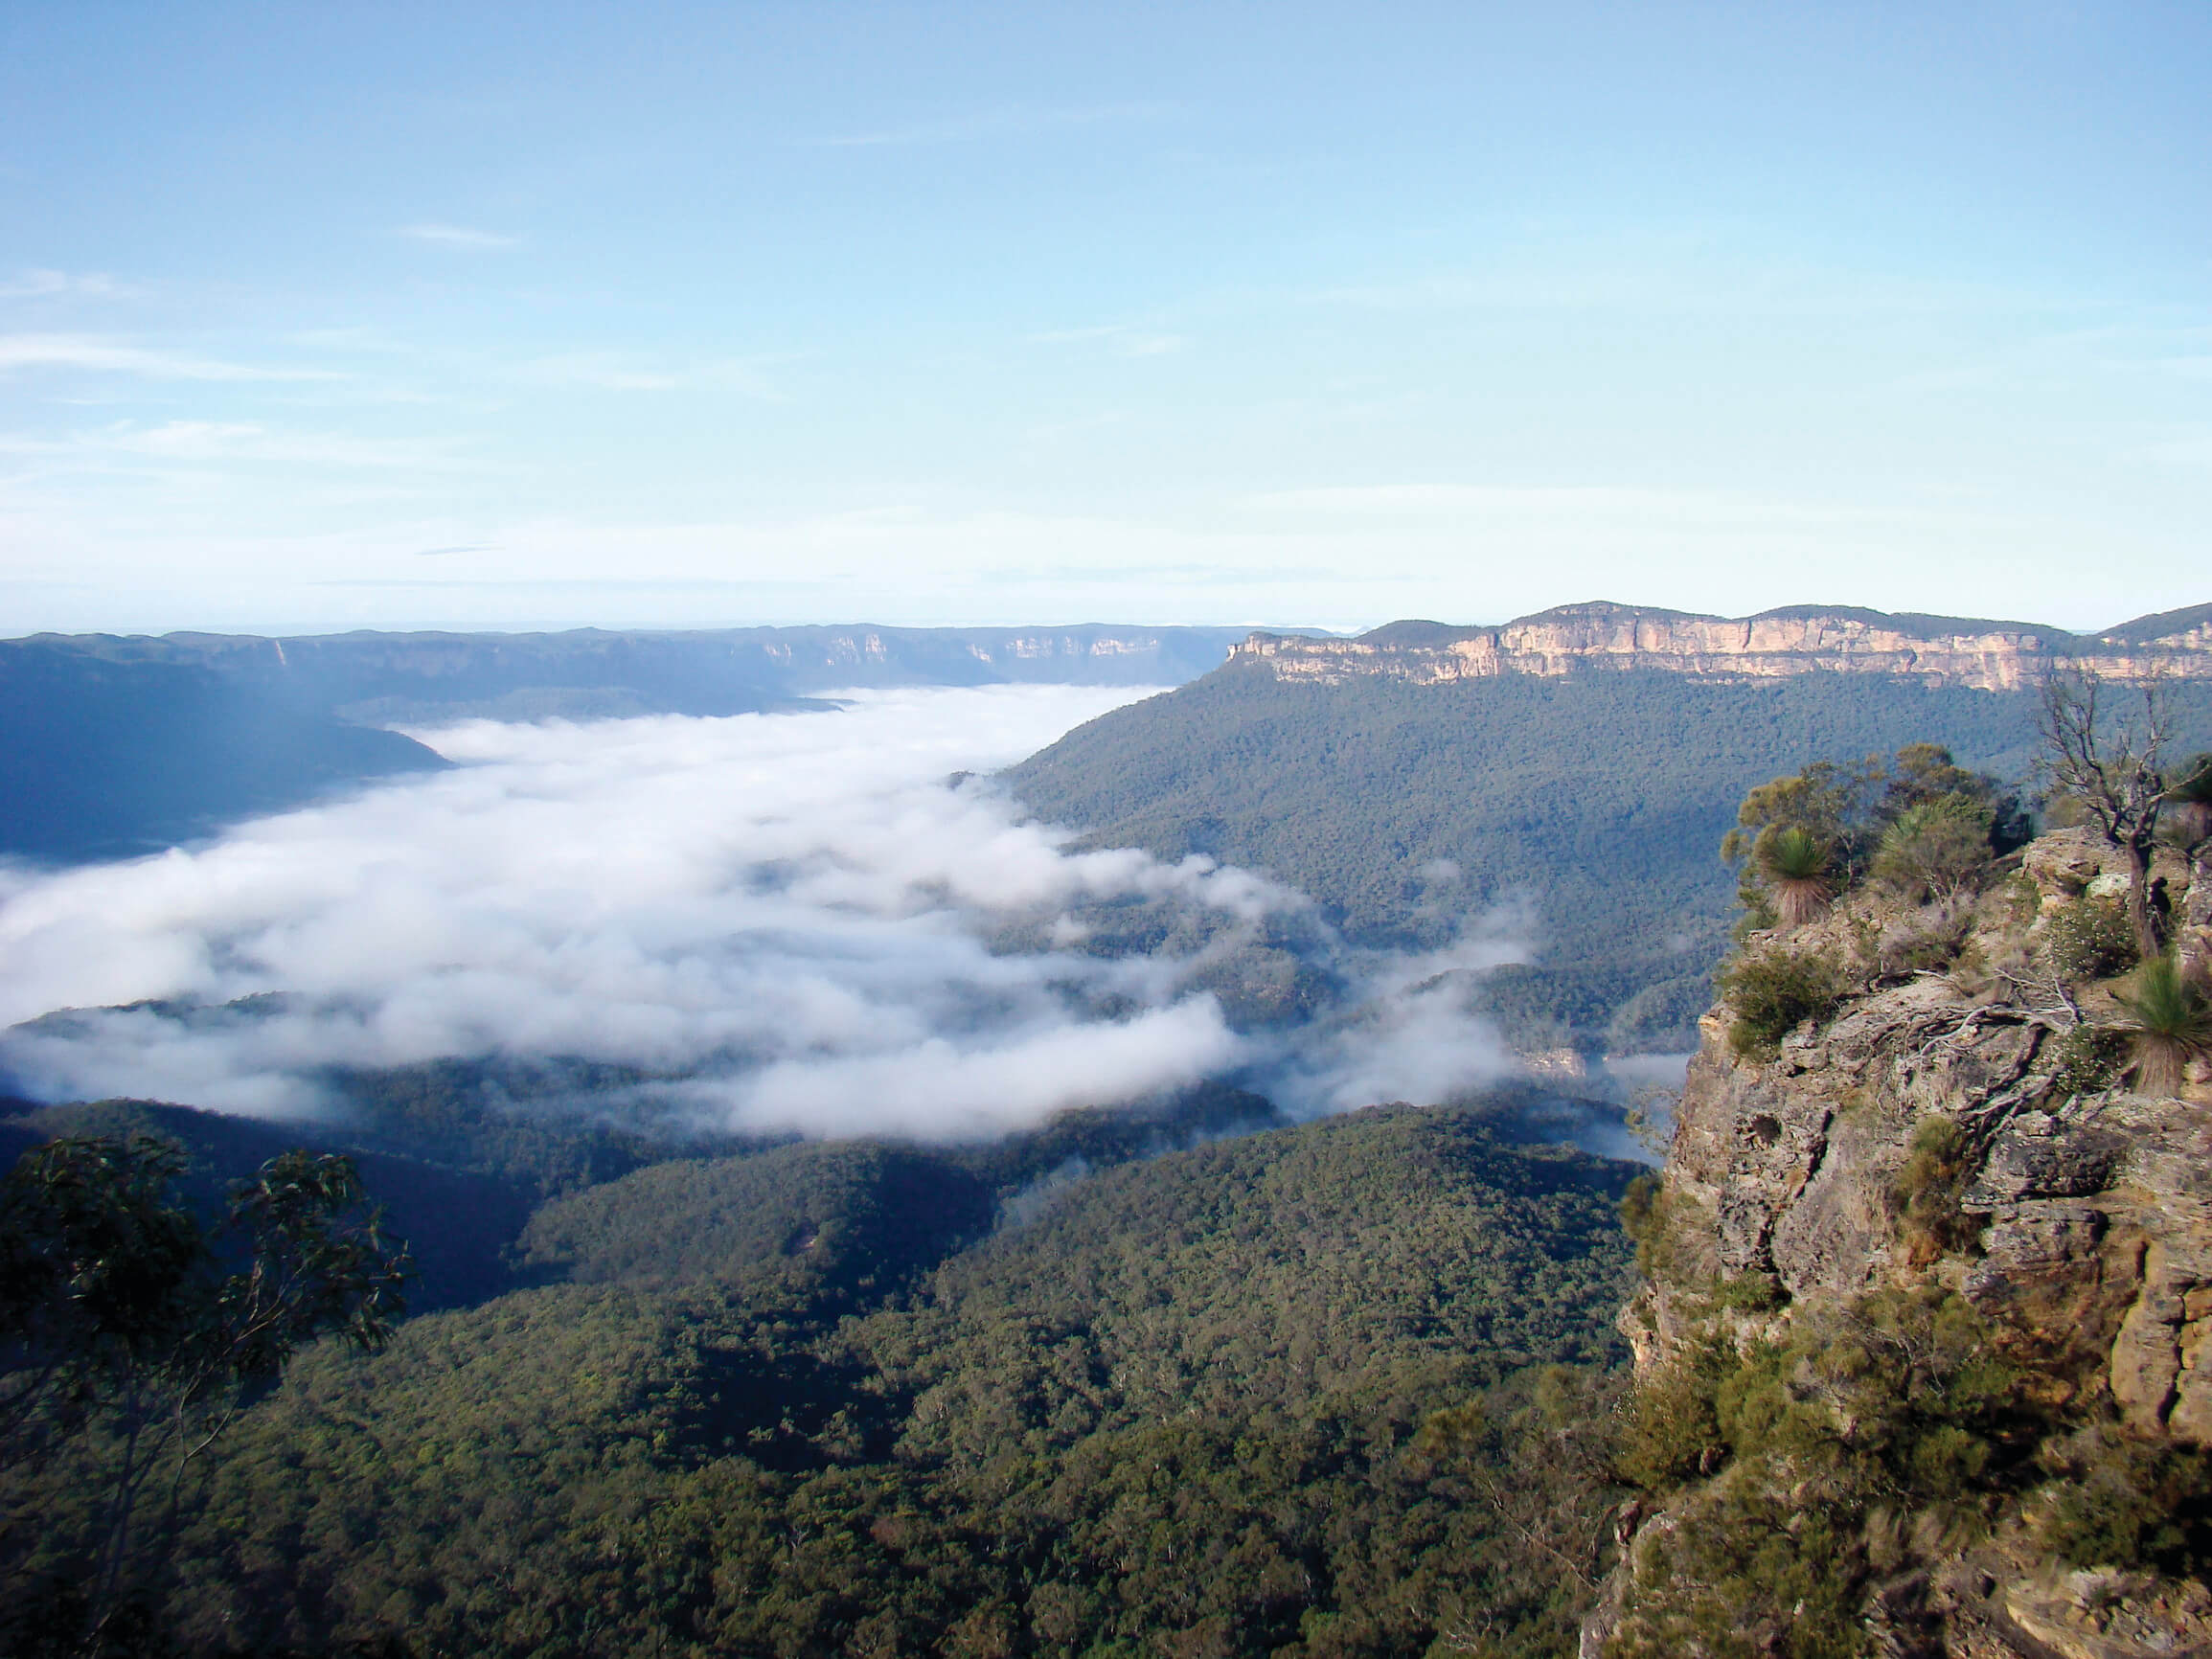 The Greater Blue Mountains World Heritage Area